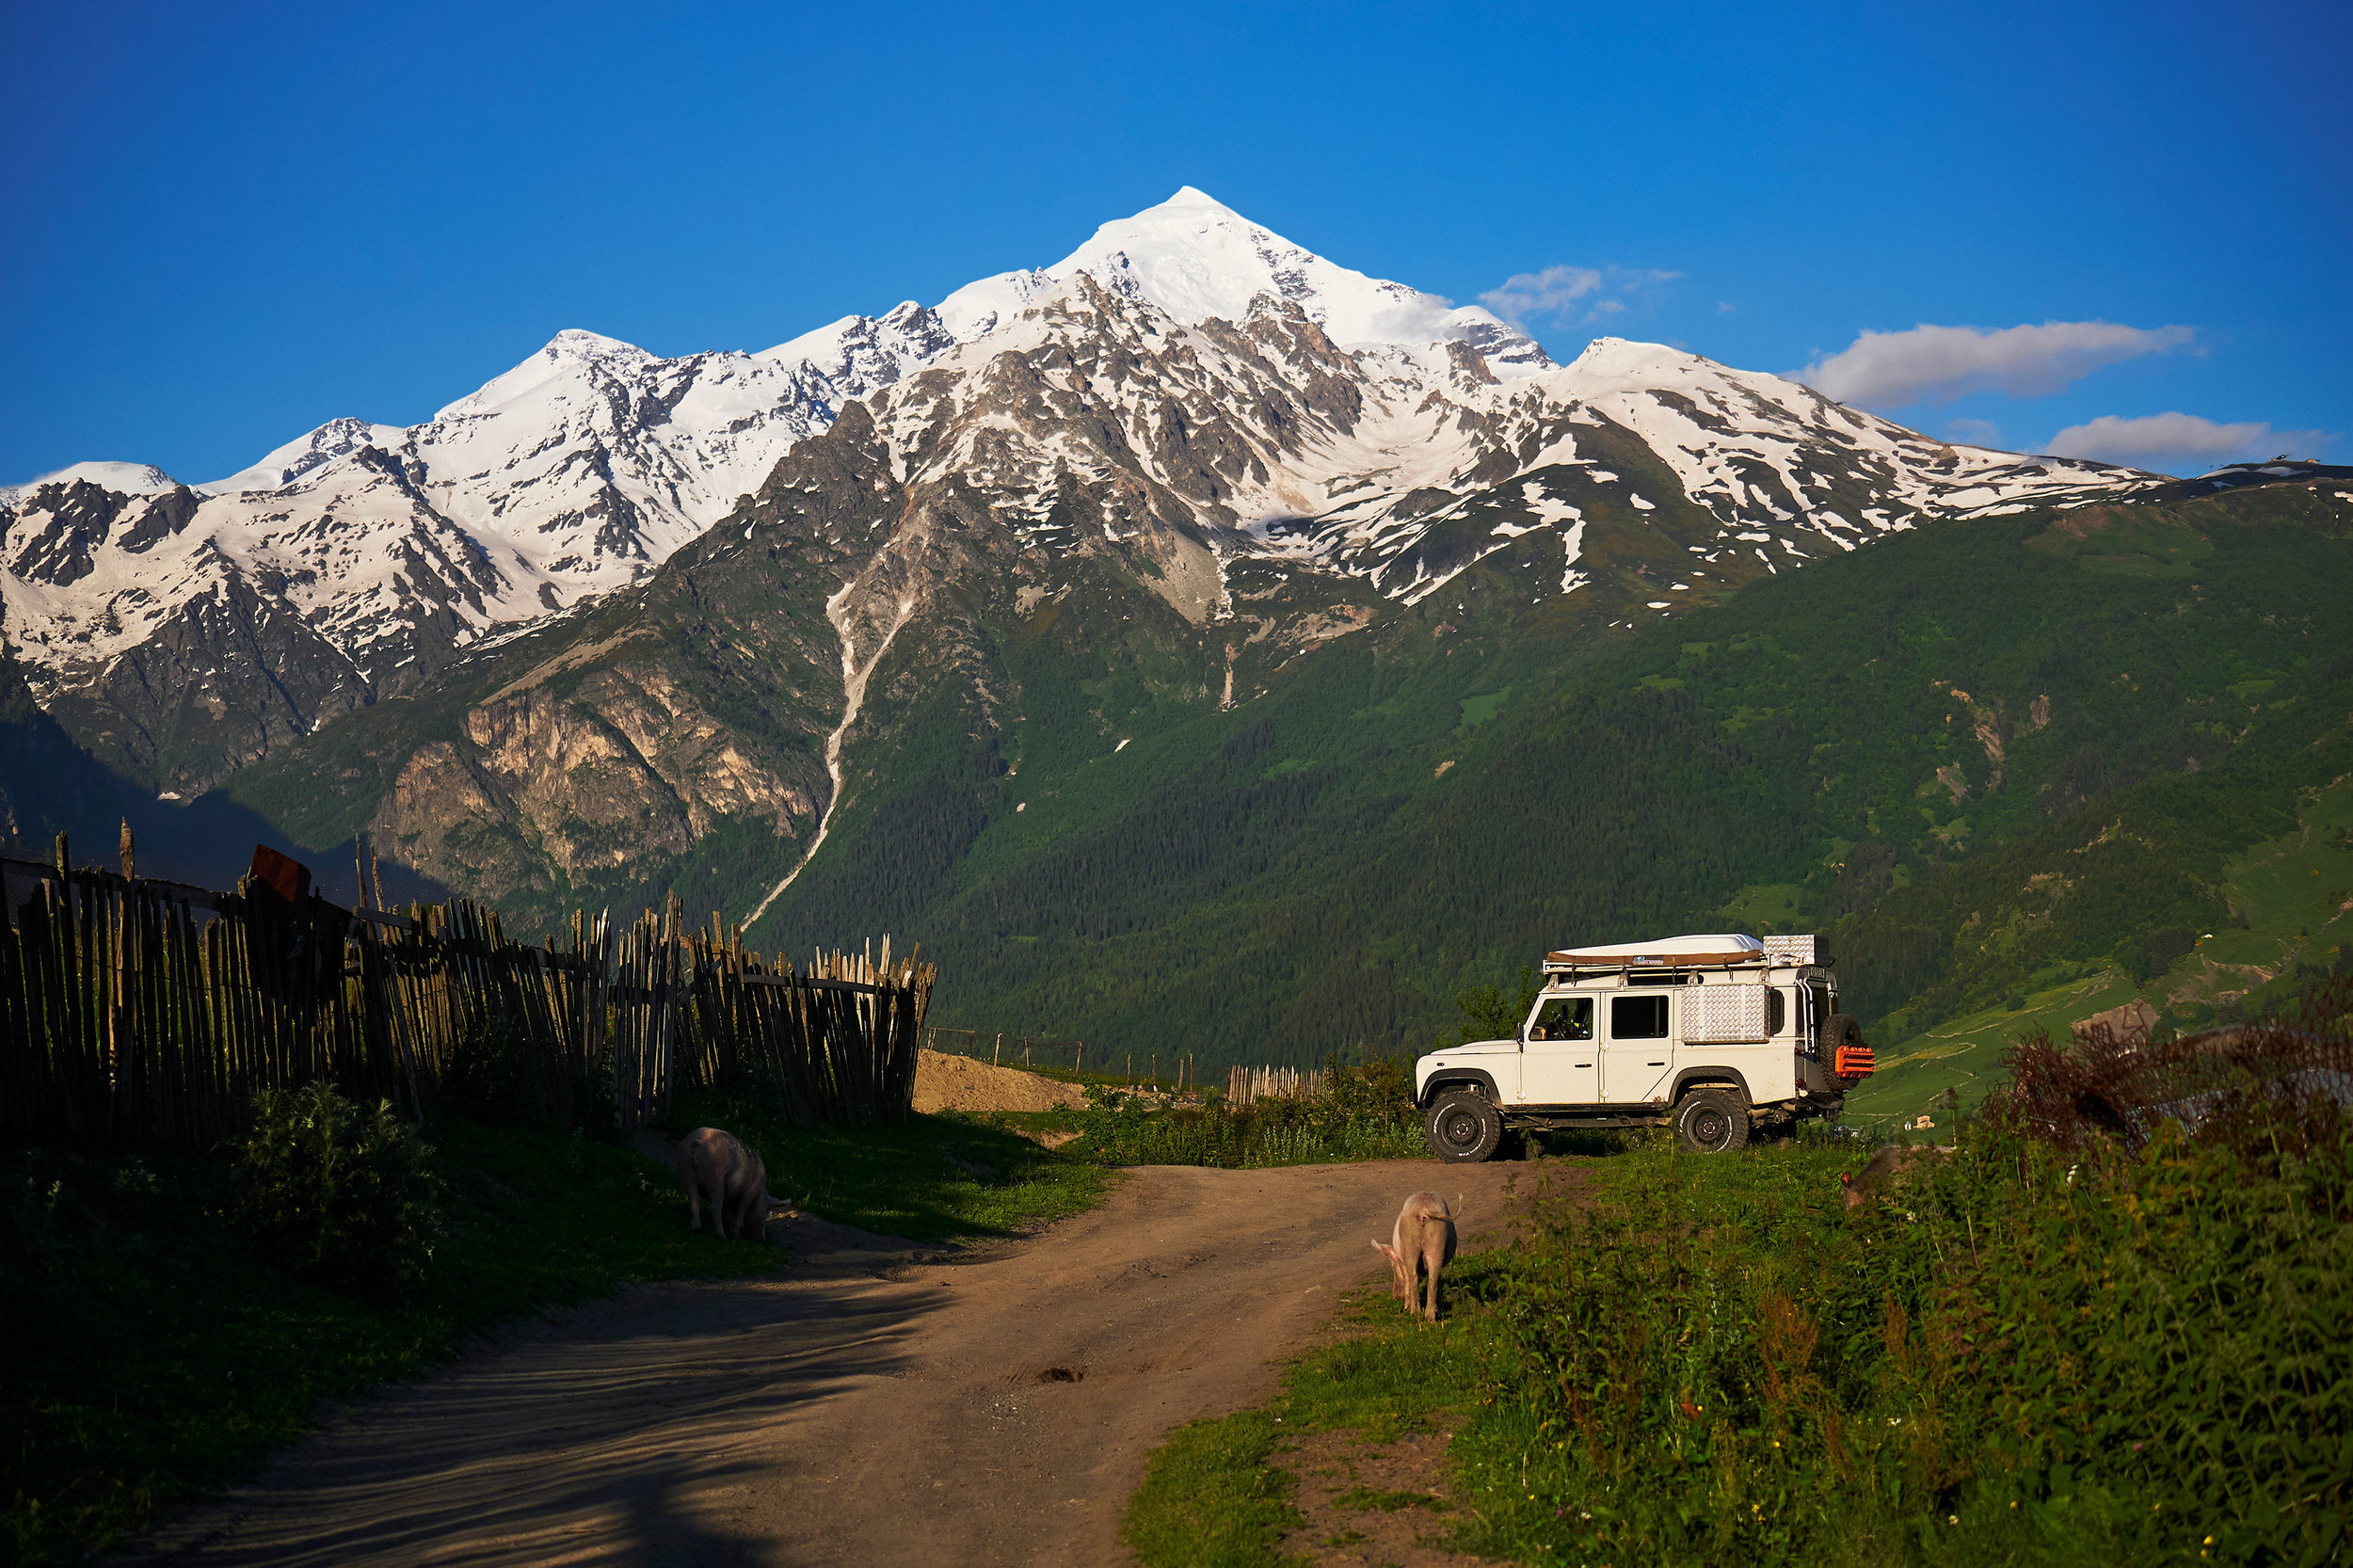 Svaneti-Landrover-in-front-of-mountain